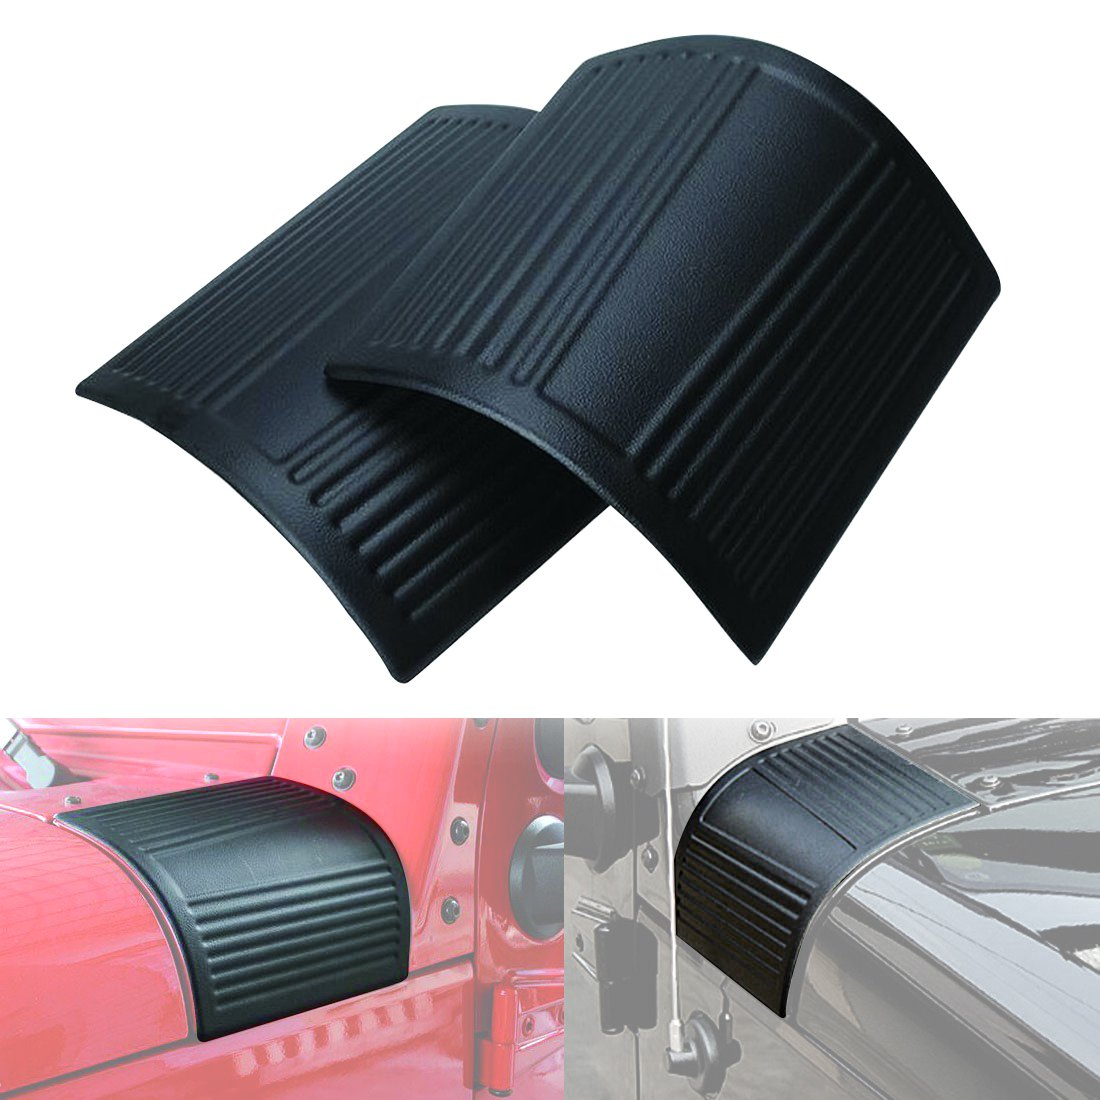 ICarszone ICARS Black Cowl Body Armor Cowling for 2007-2018 Jeep Wrangler JK JKU Unlimited Rubicon Sahara Accessories Pair CarsHome